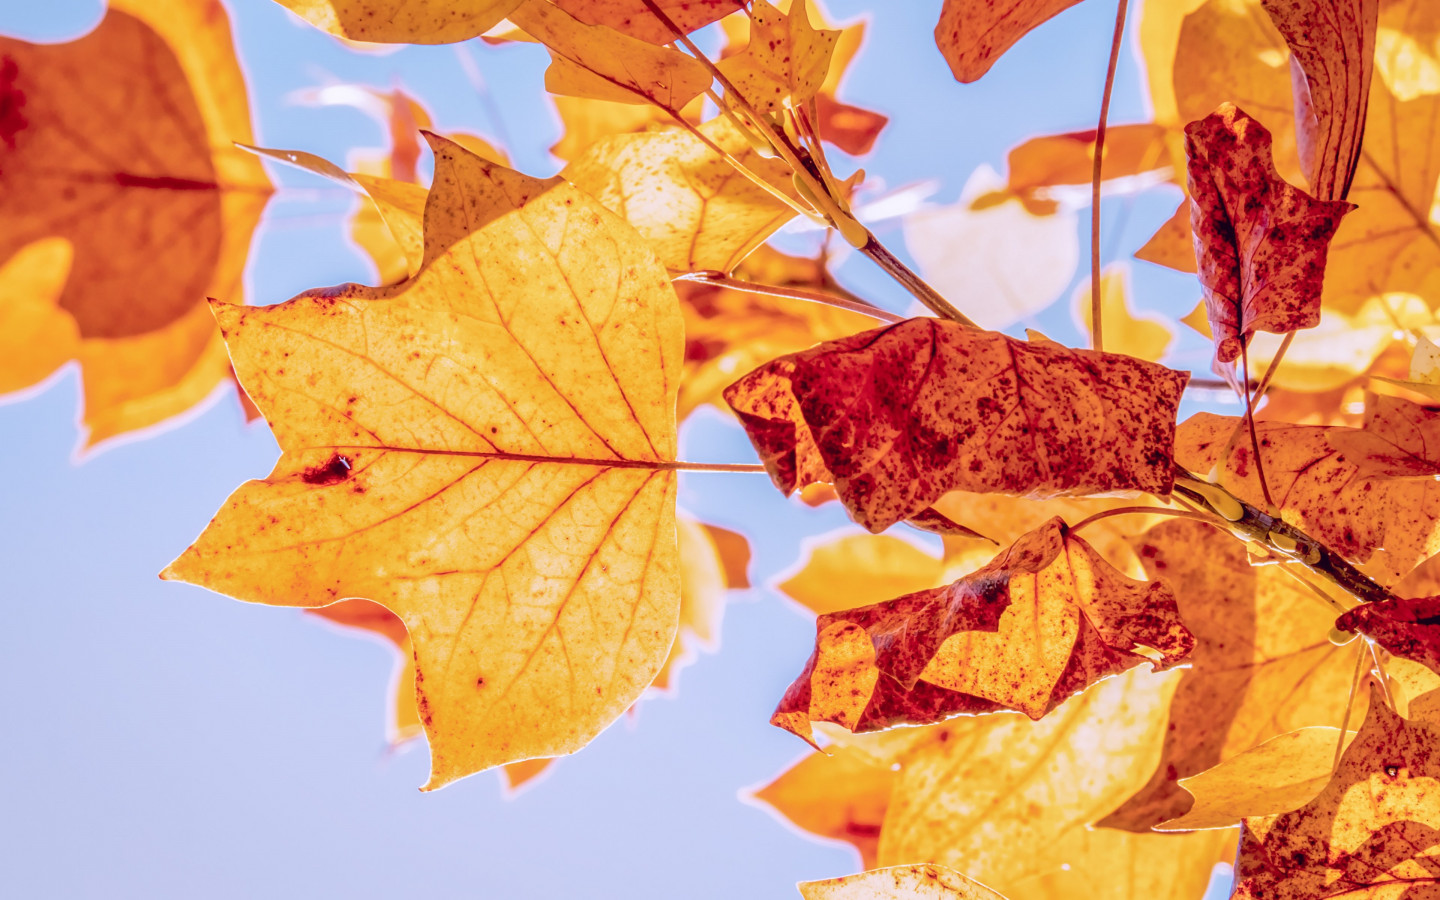 Best Autumn Leaves Wallpaper - Nature Leaves Colorful - HD Wallpaper